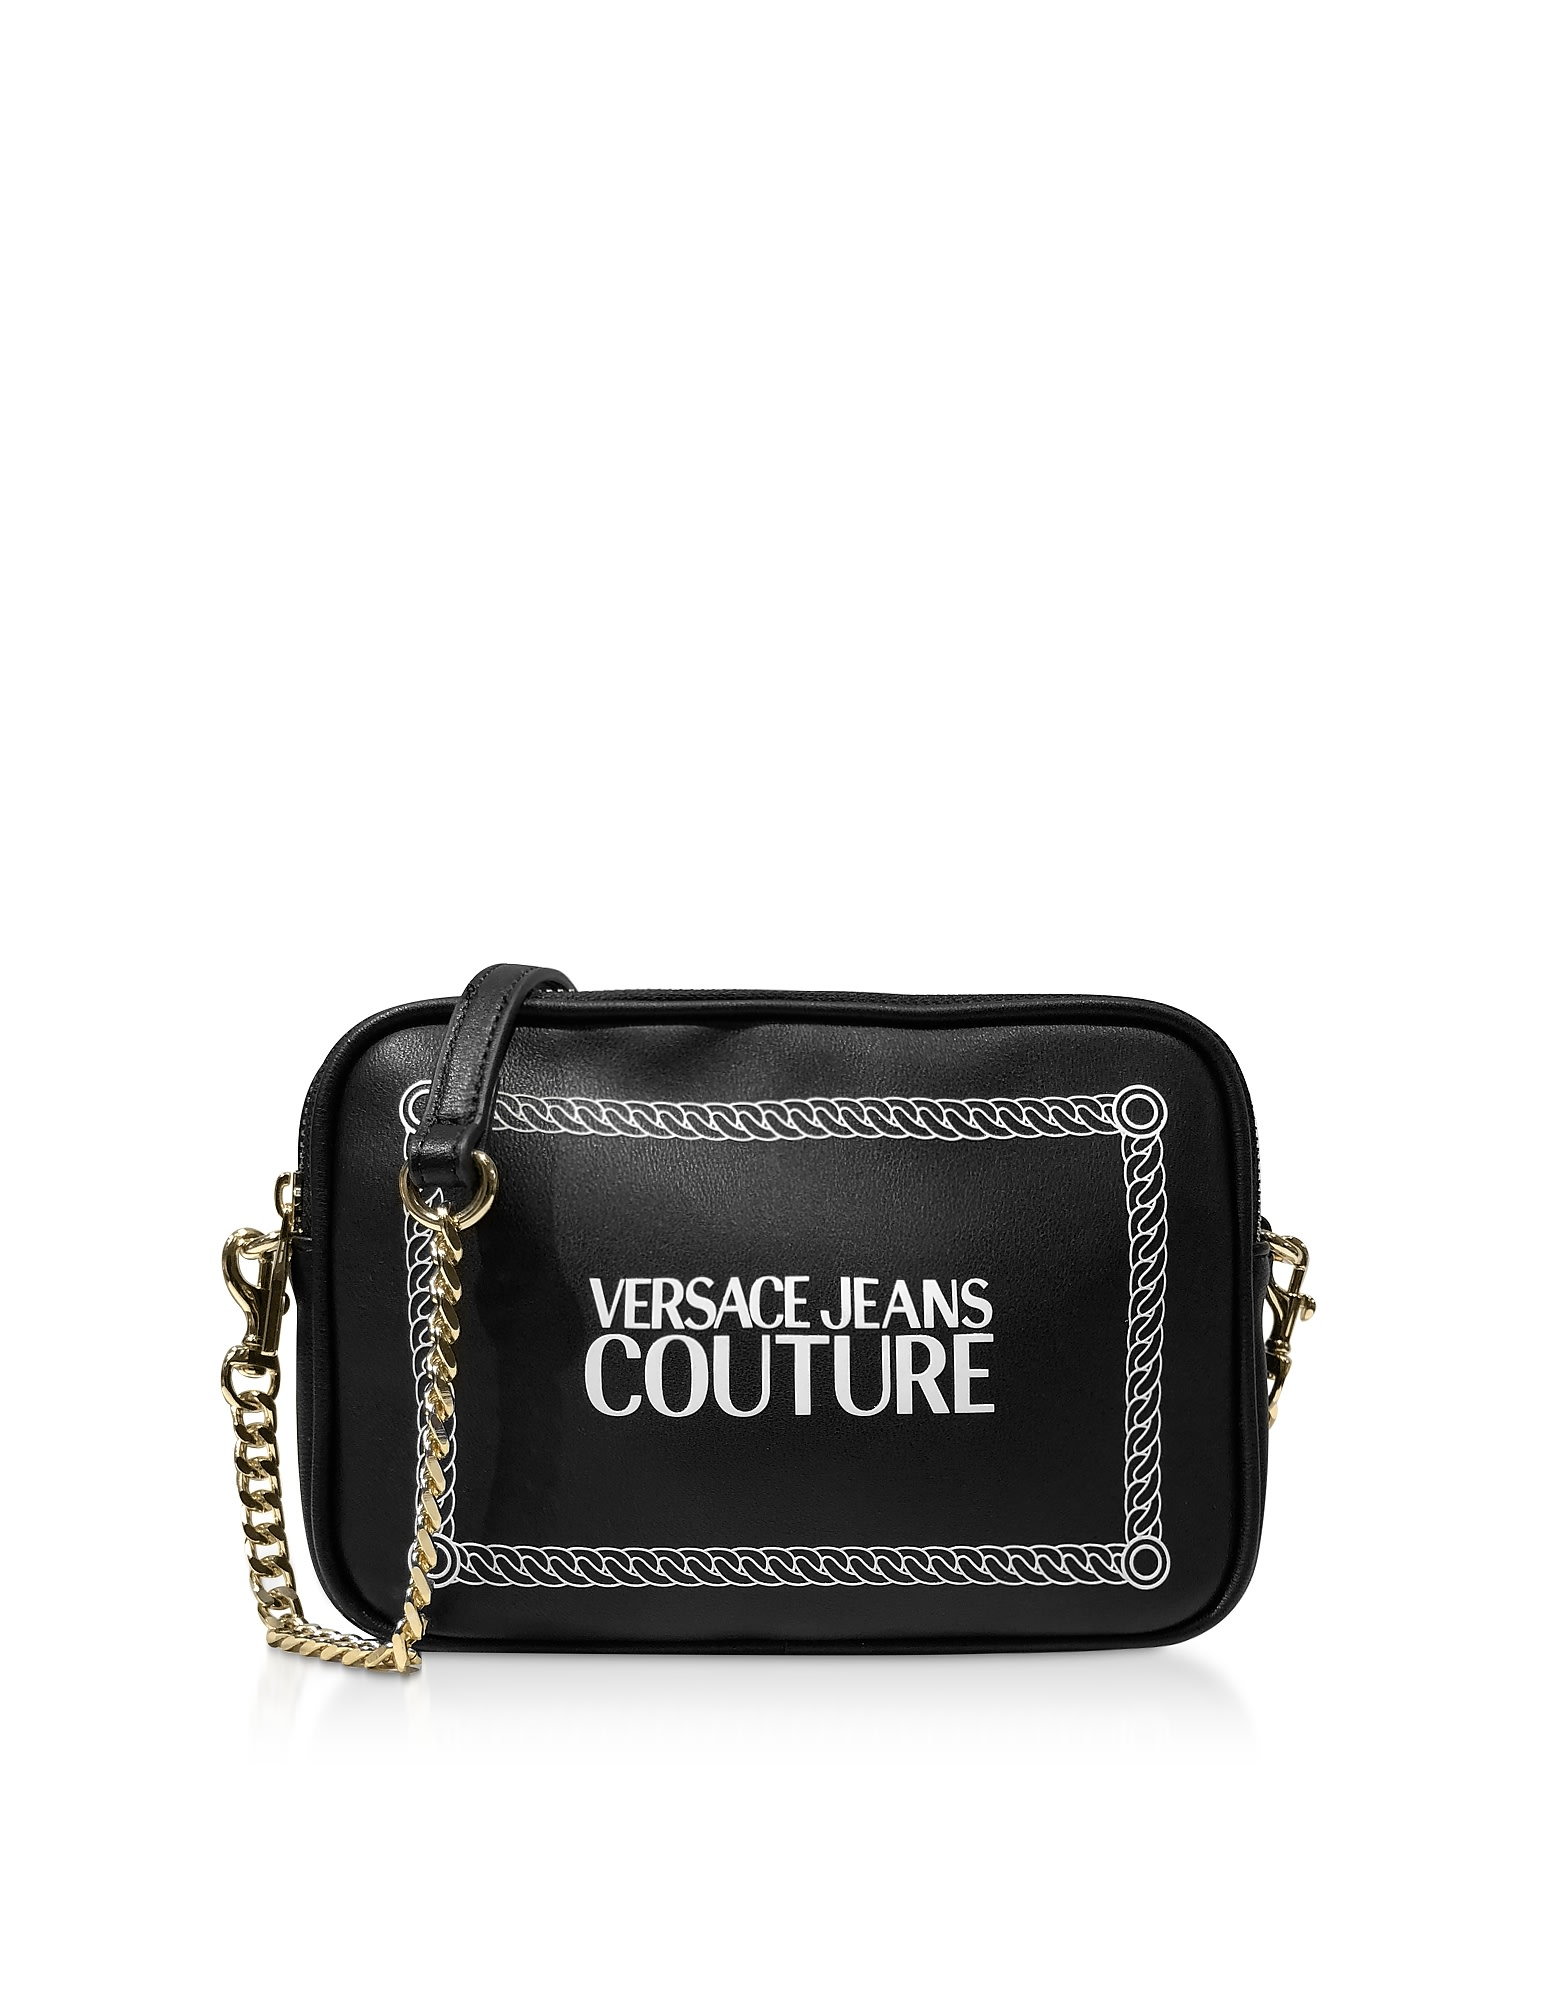 Versace Jeans Bag Price Free Shipping Off65 Id 12